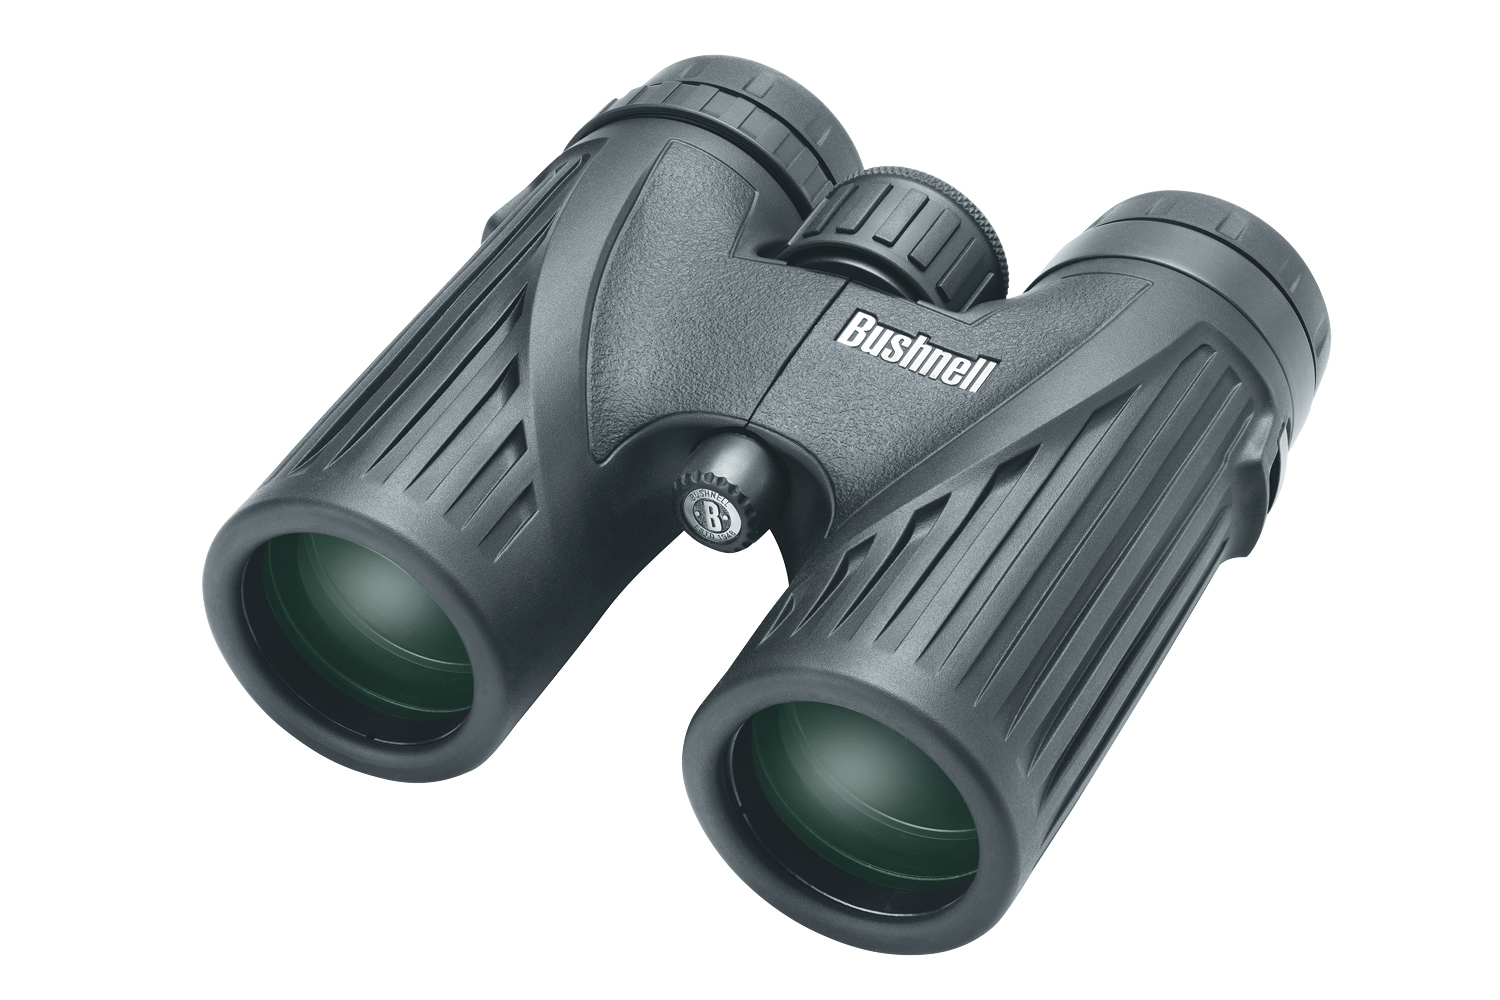 Бинокль Bushnell LEGEND ULTRA-HD 10x36 бинокль kenko ultra view 7–15х35